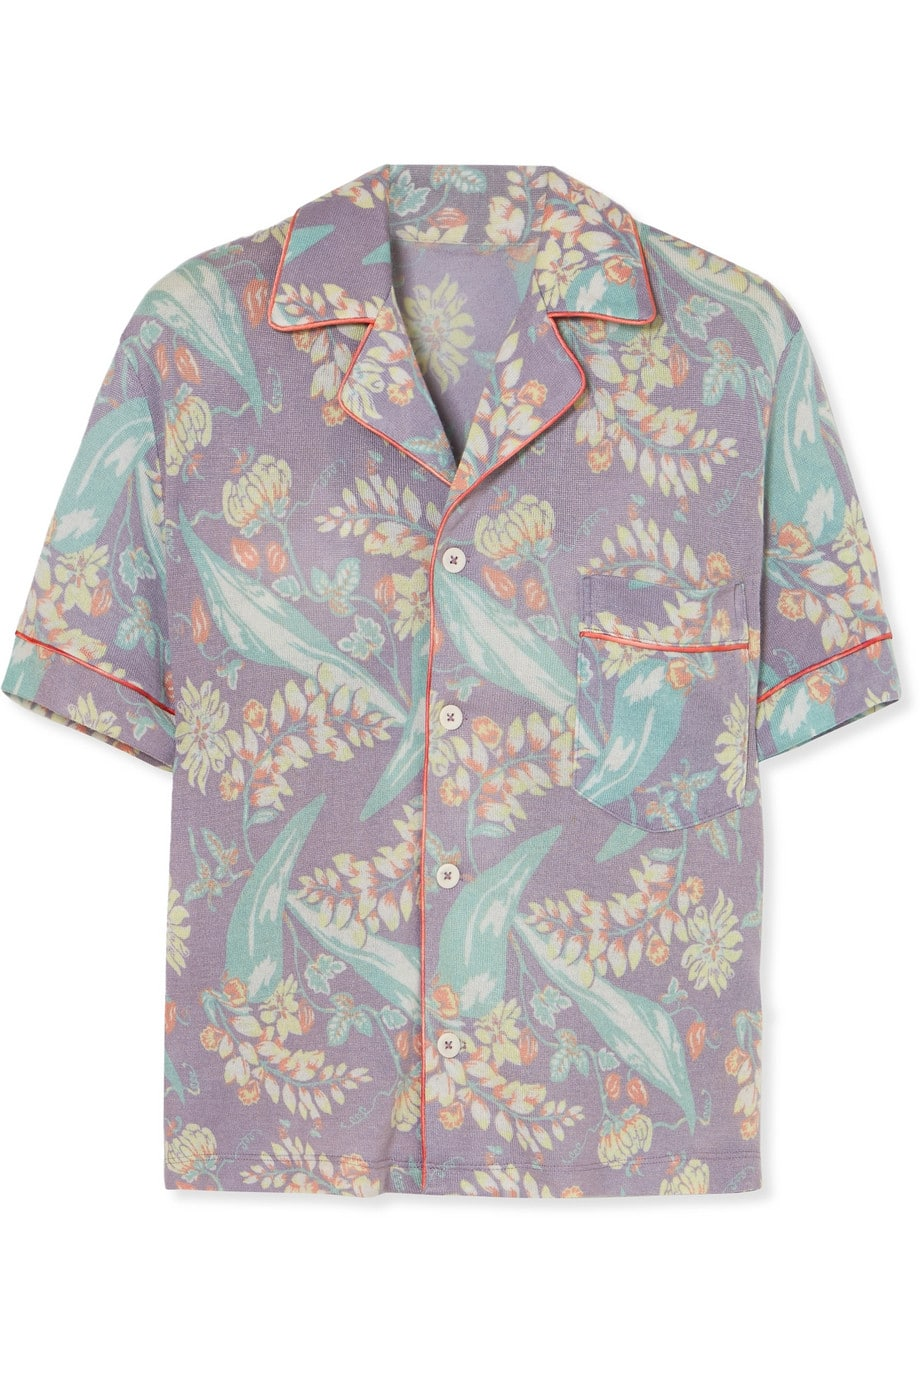 zara hawaii skjorte